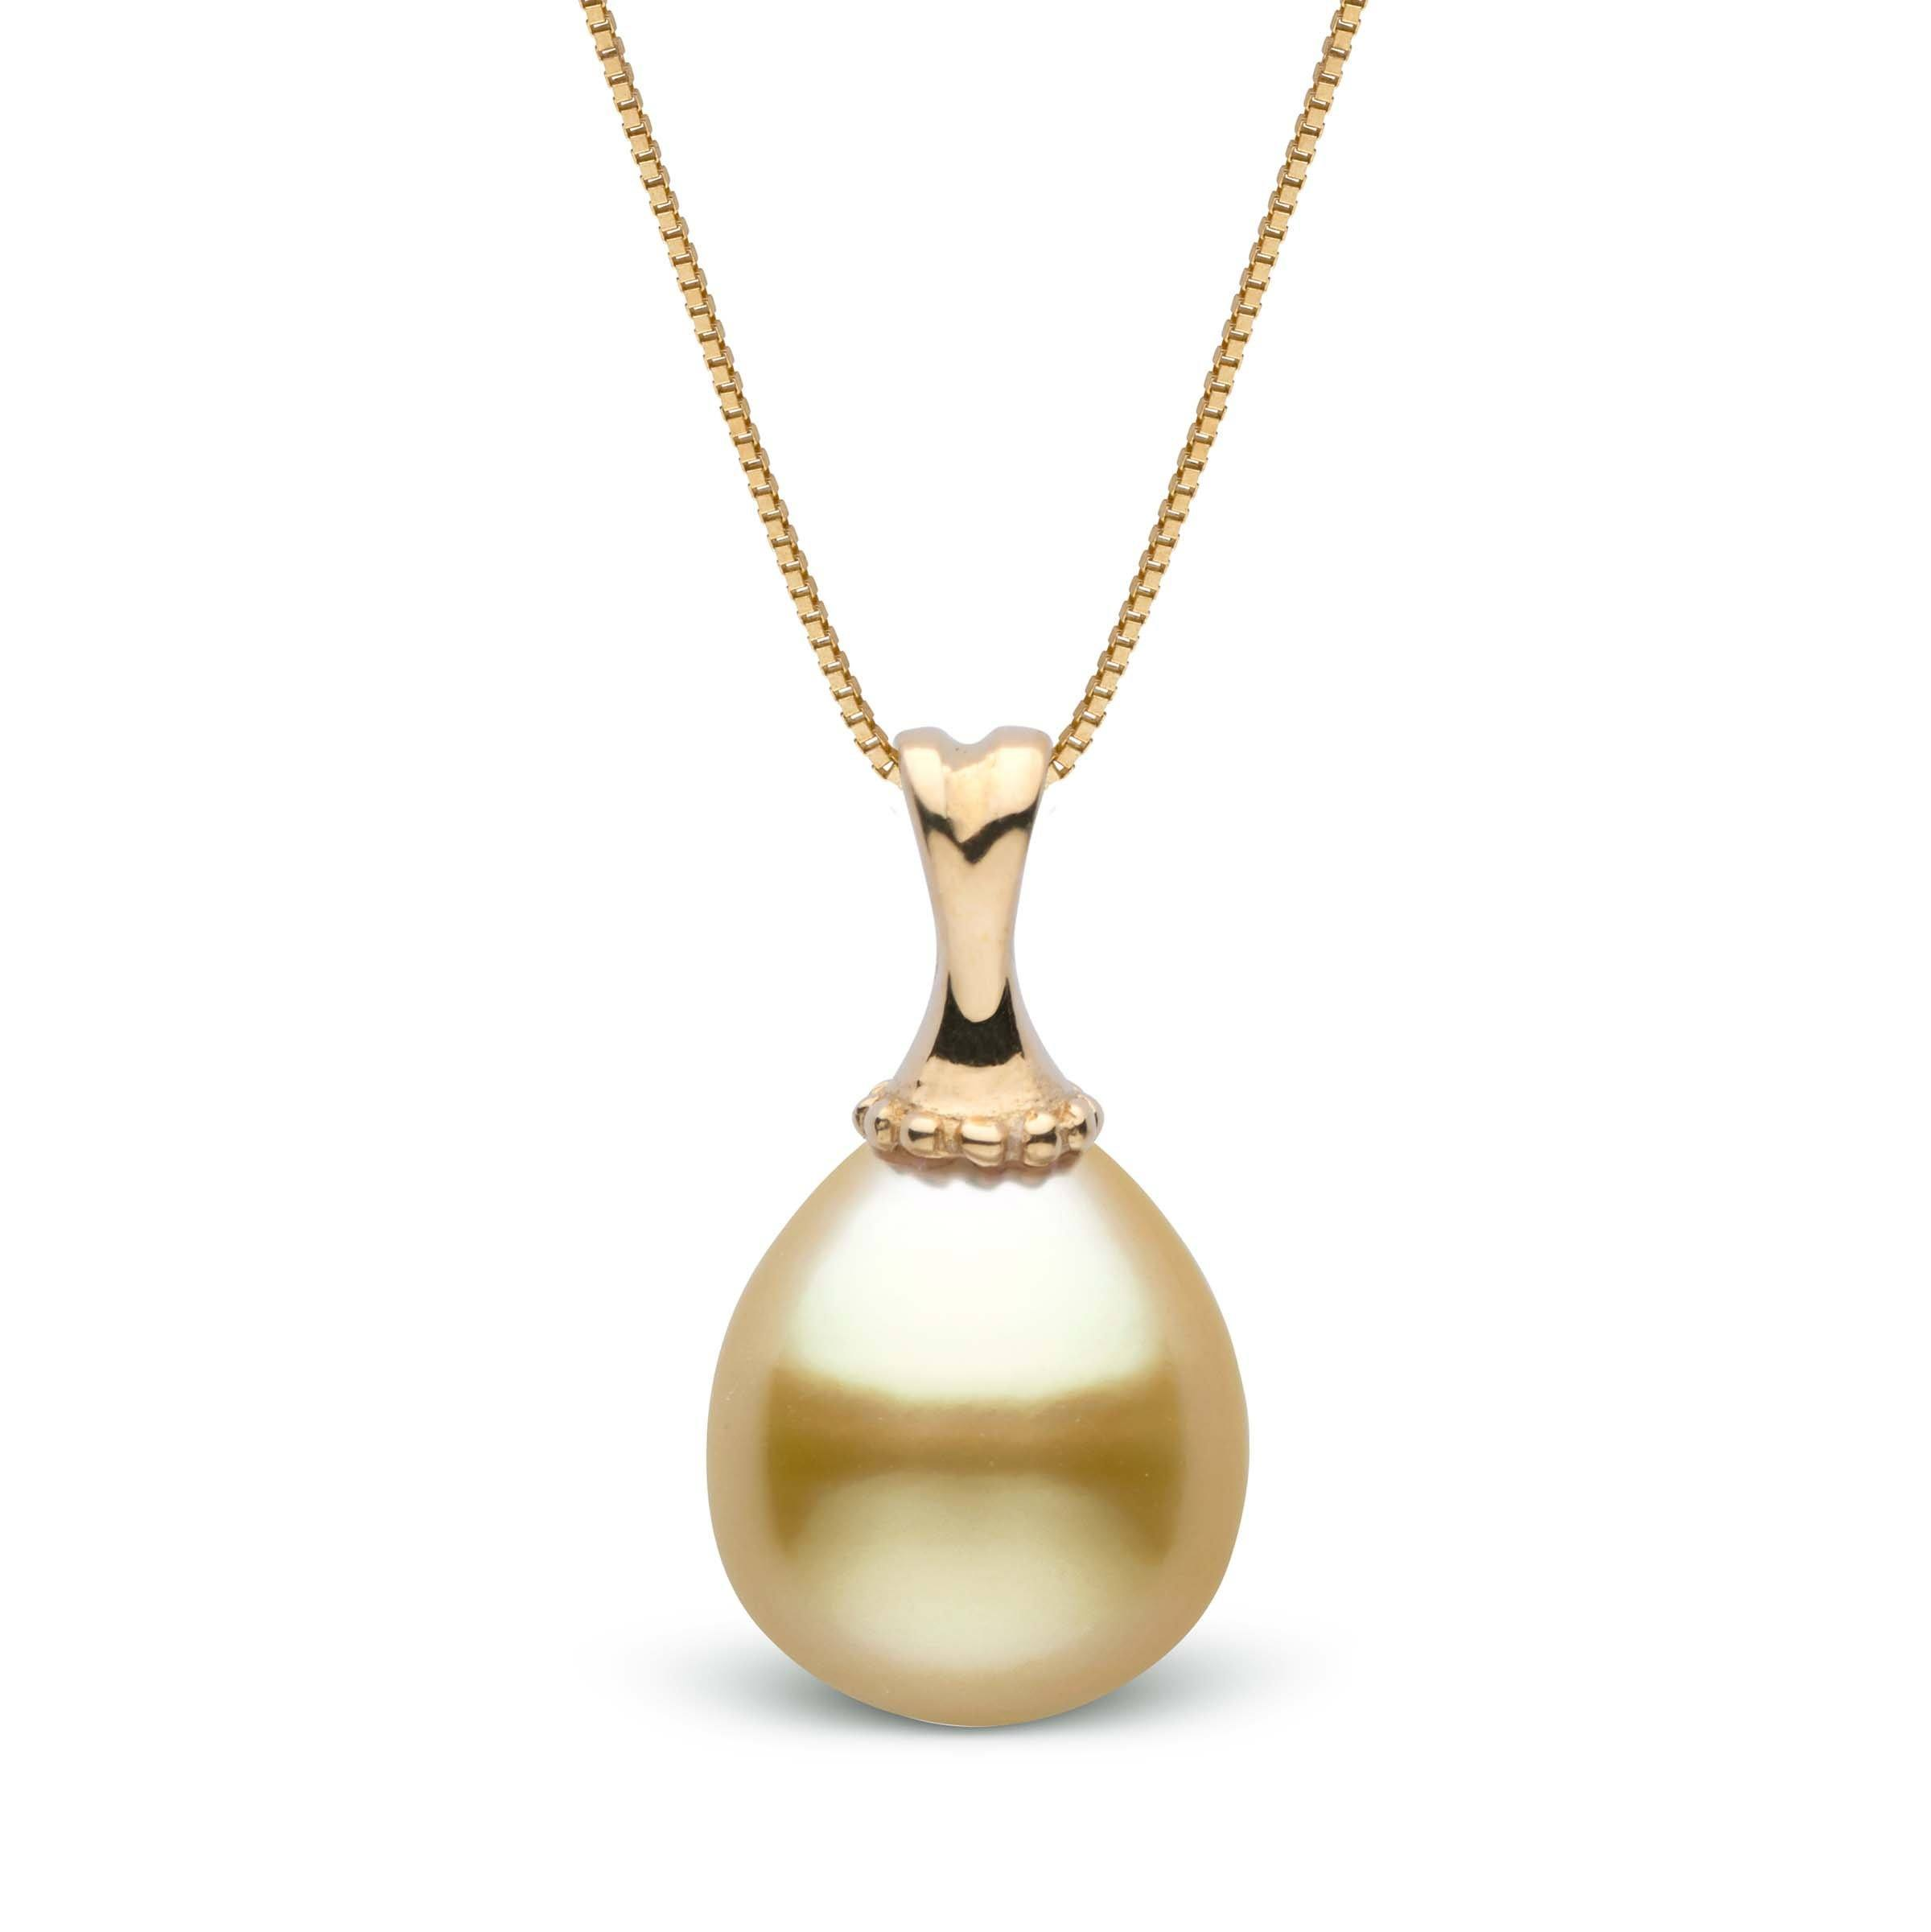 10.0-11.0 mm Golden South Sea Drop Pearl Pendant